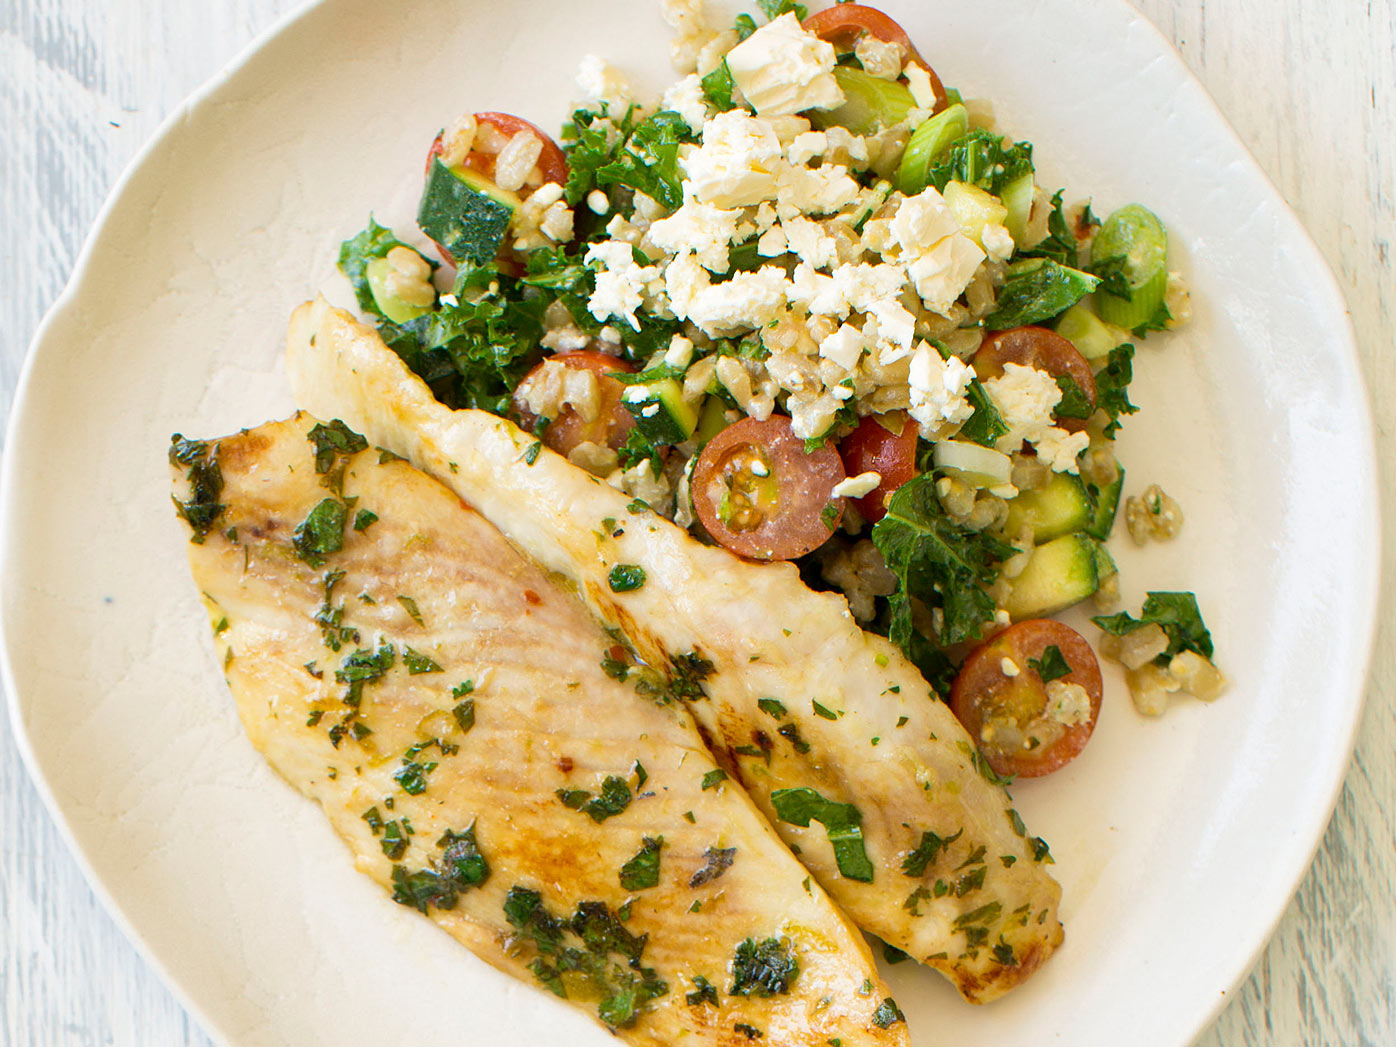 Nadia Lim's lime and coriander grilled fish